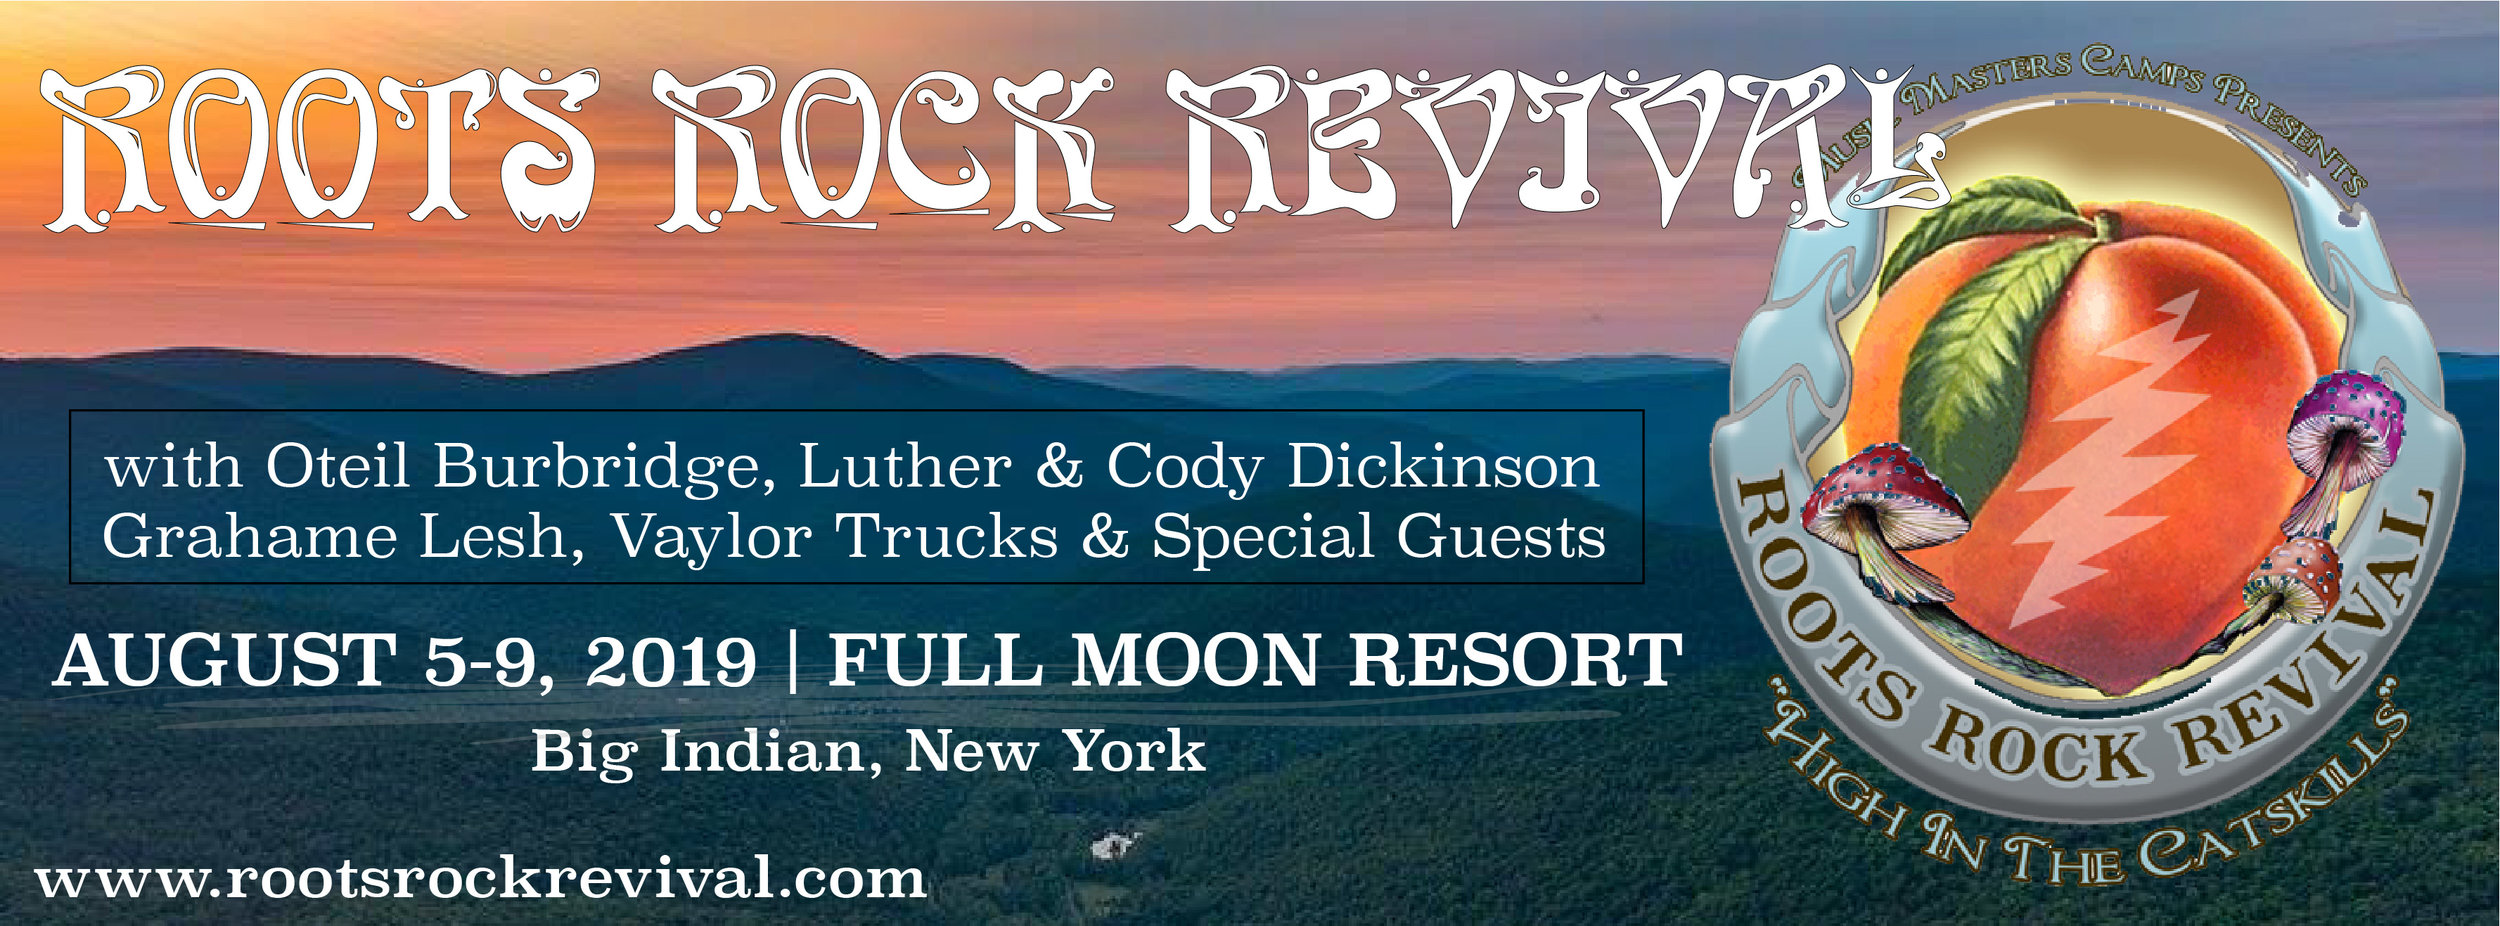 Oteil Burbridge, Luther & Cody Dickinson & Special Guests